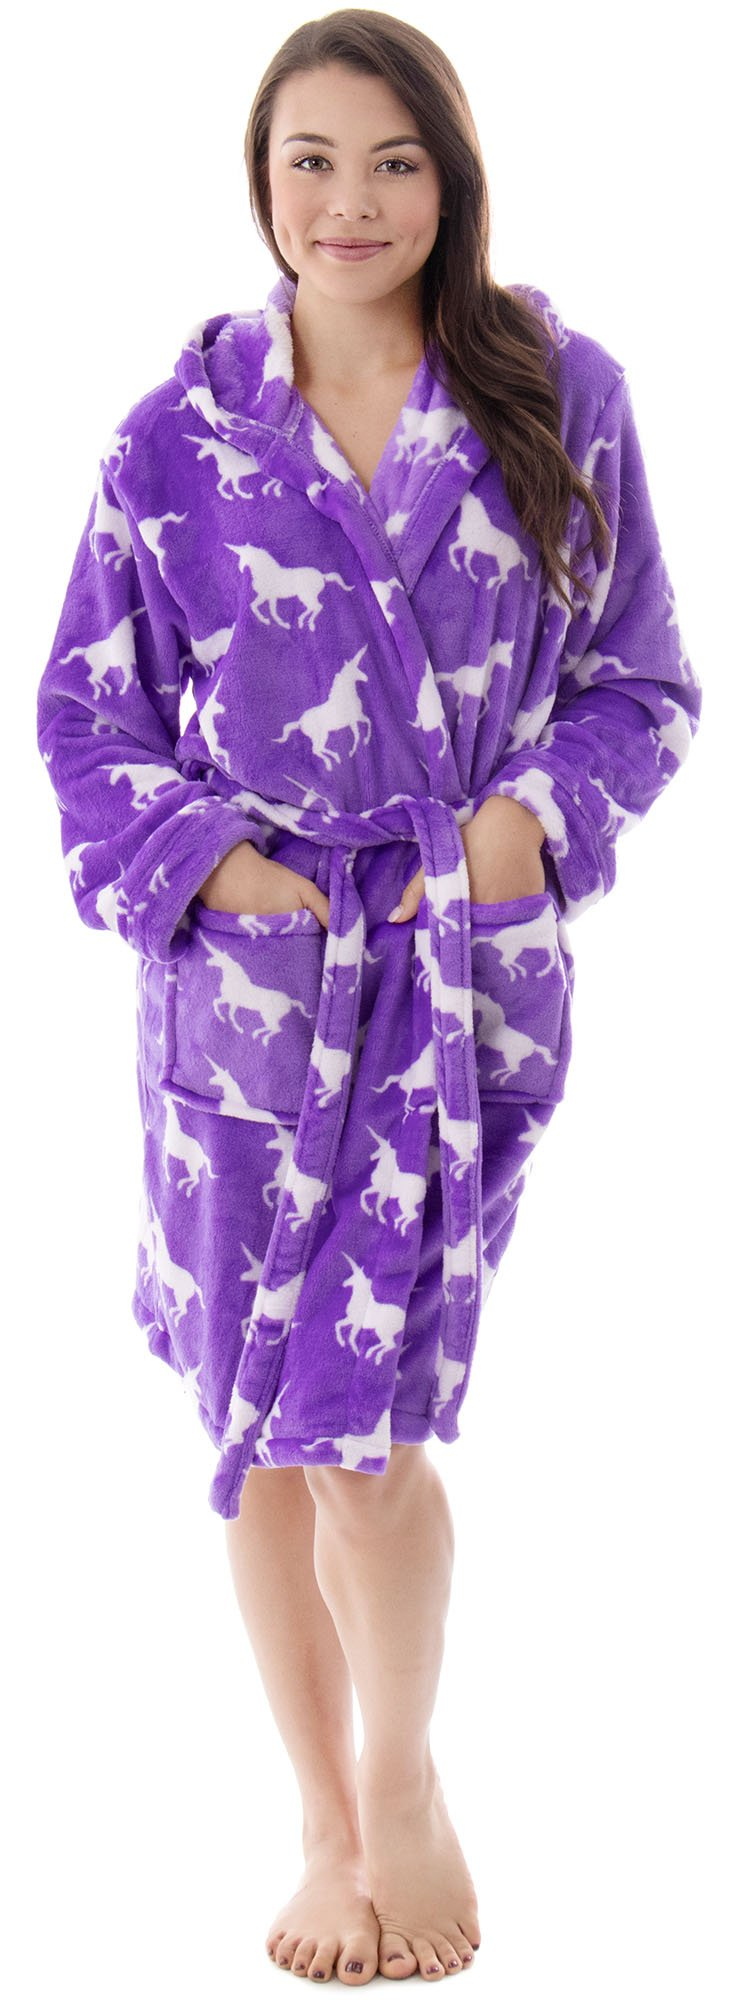 Hotel Spa Bathrobe Collection Textured Bath Robe Plush Robe for Women, Purple